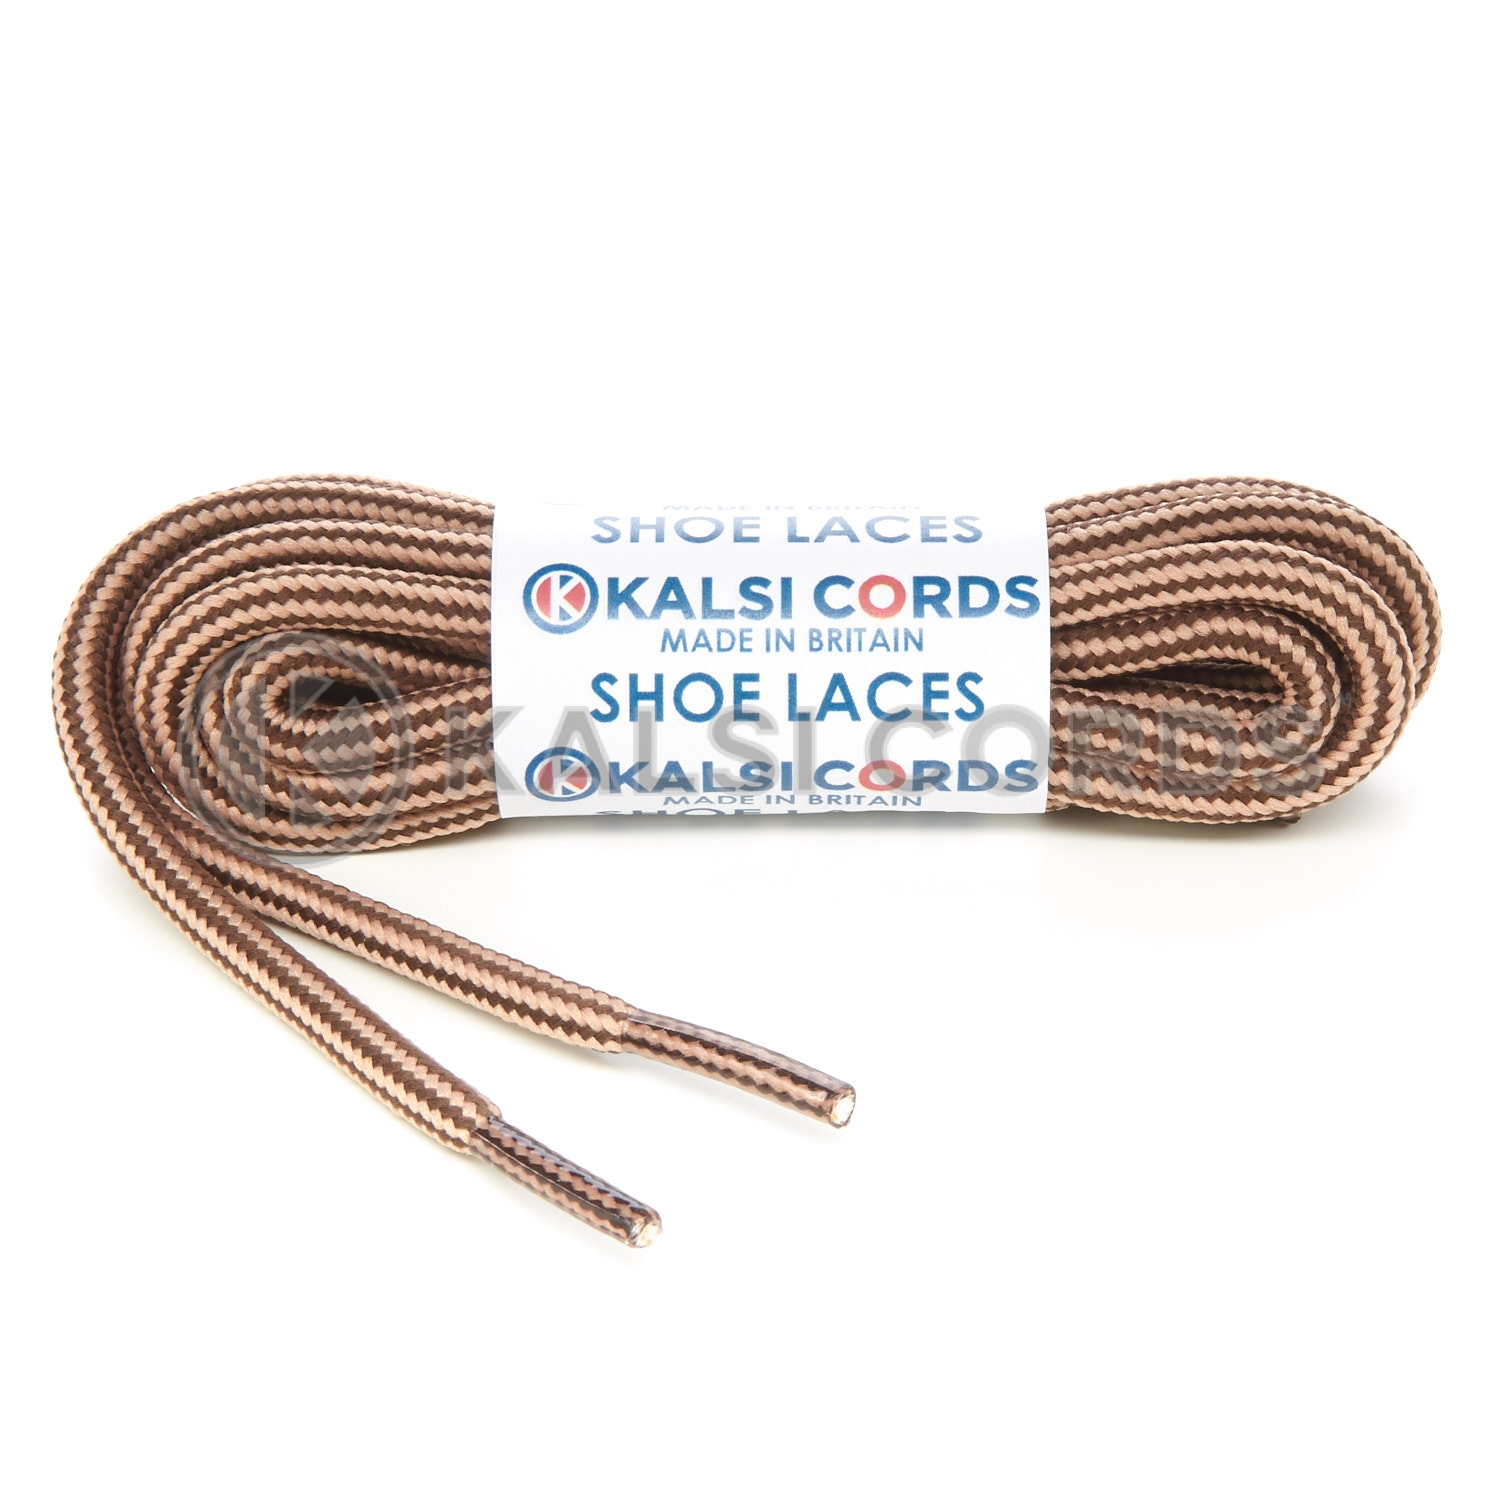 T621 5mm Round Cord Stripe Shoe Laces York Brown Dark Beige Kids Trainers Adults Hiking Walking Boots Kalsi Cords